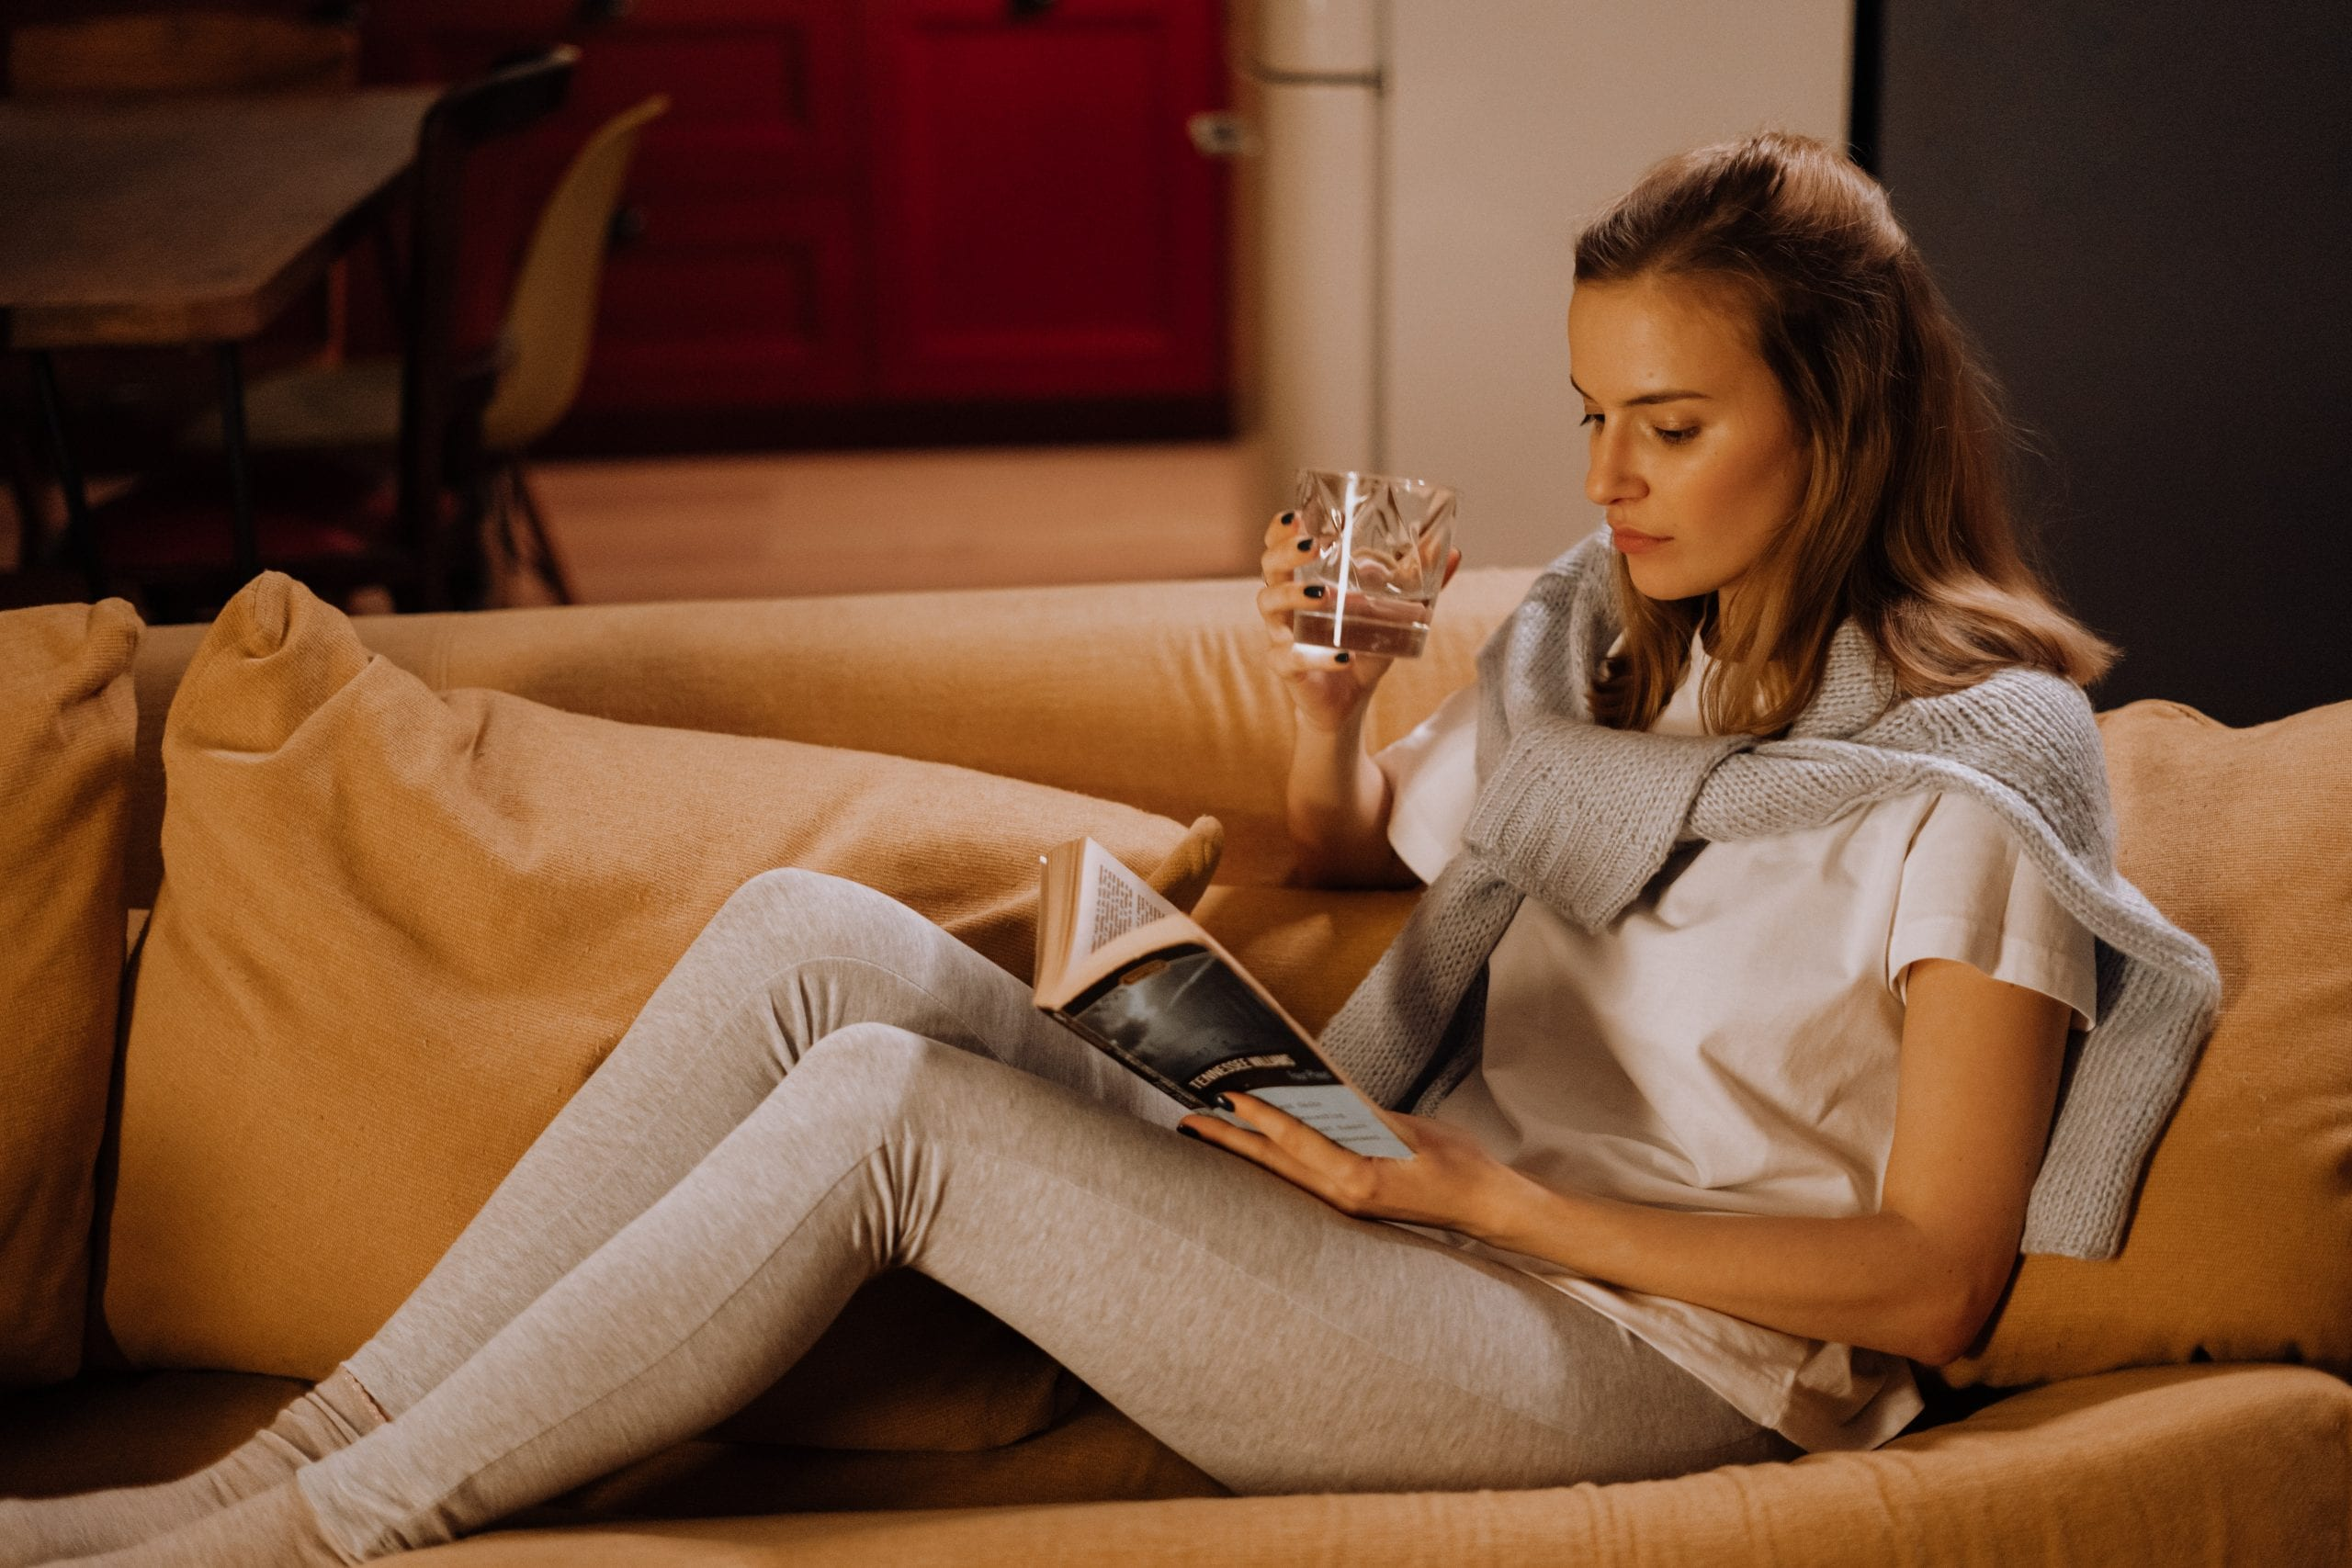 woman reading a book with a glass of water in hand